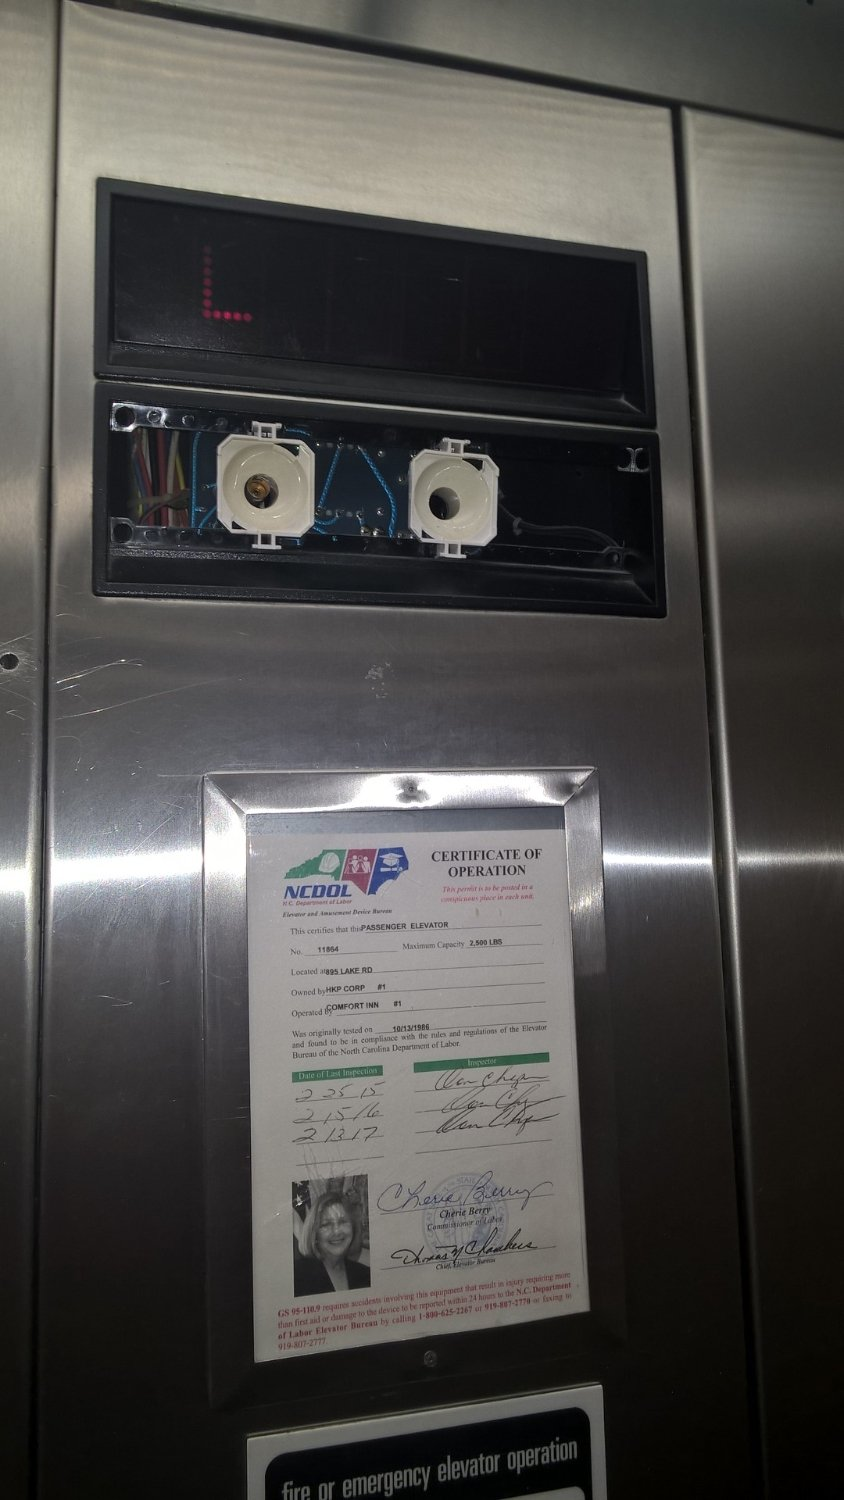 Elevator floor lights (ironically directly above the inspection sticker)